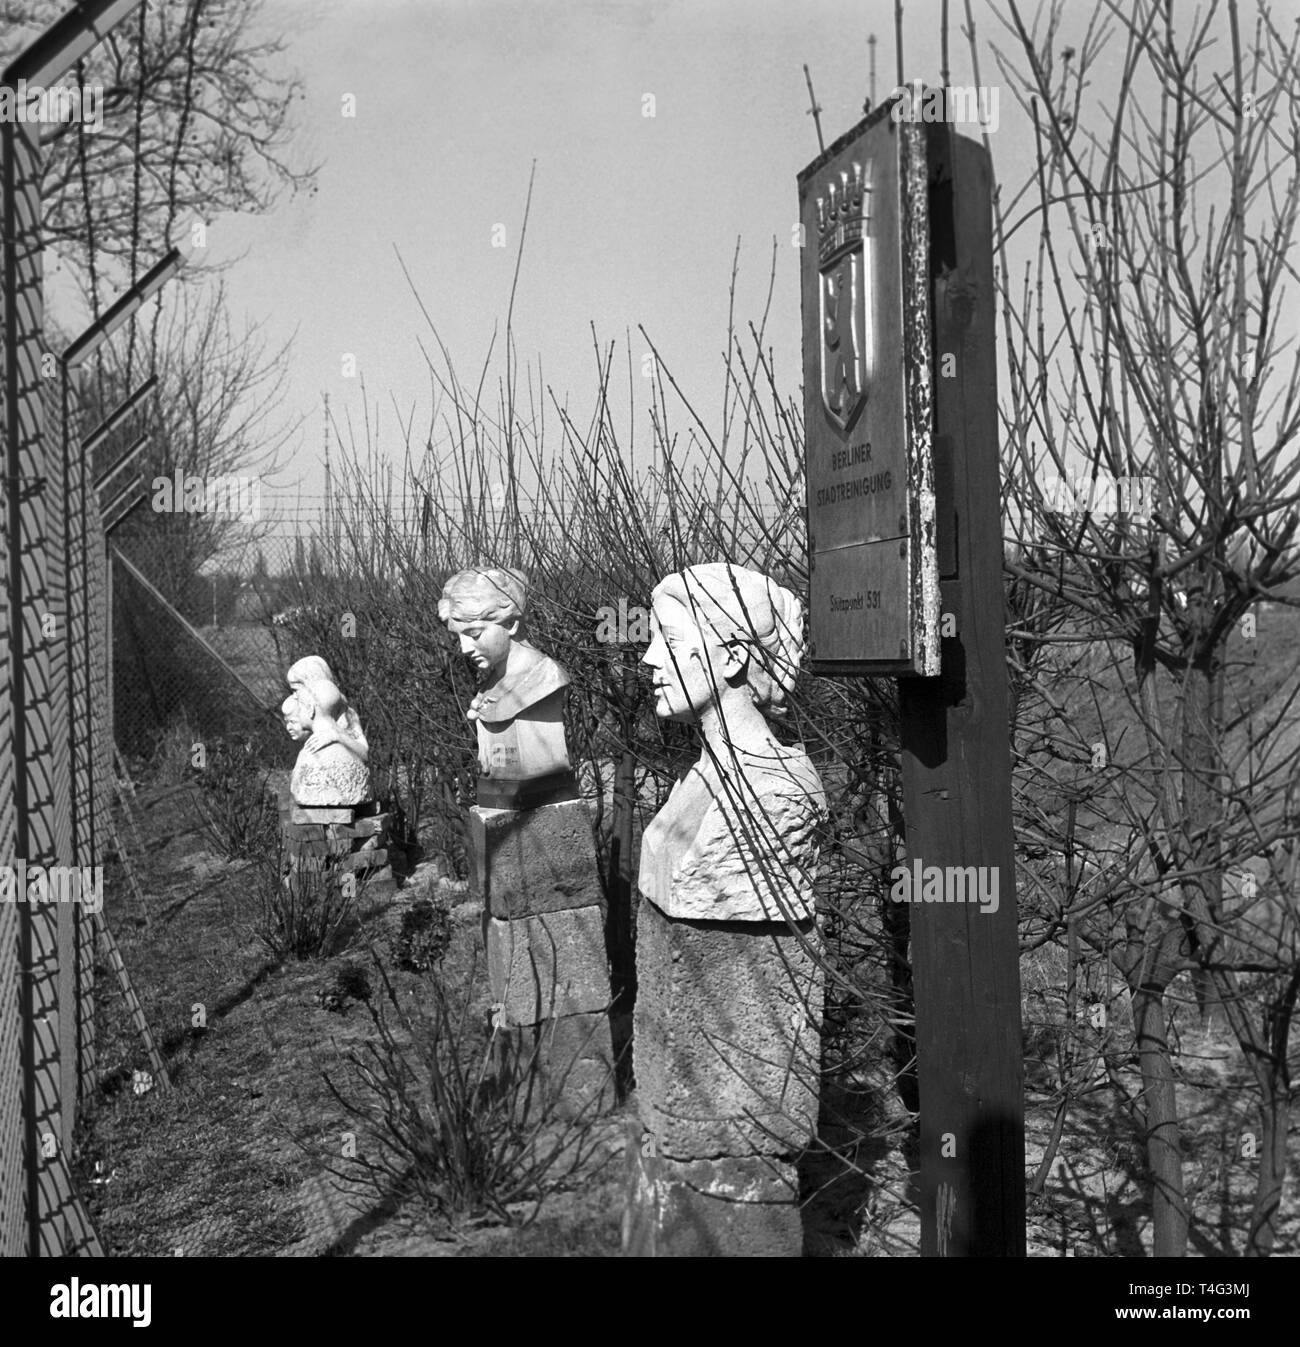 View of three busts, which were saved from destruction by members of the city environmental and operational services. They were put up at the fence of their business premises in Dahlem (undated archive photograph, 1960). | usage worldwide - Stock Image